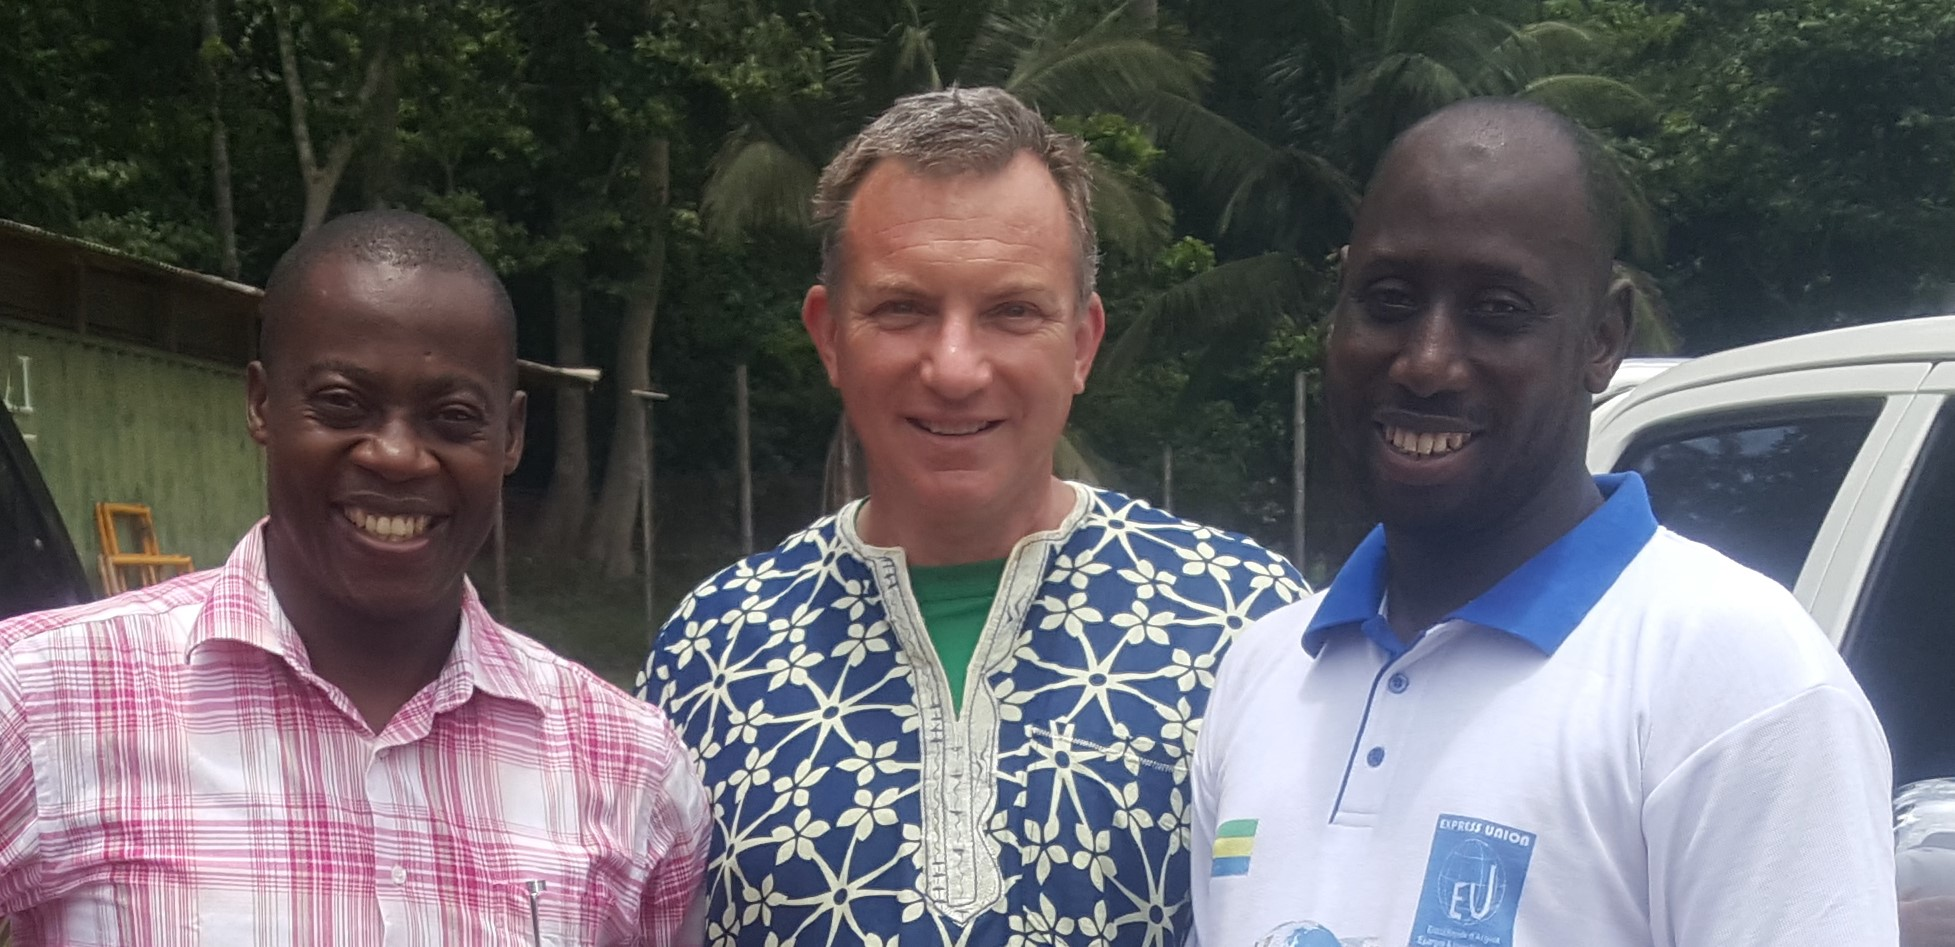 (With friends Dr. Simplice (Gabon) and Bakary (Mali))